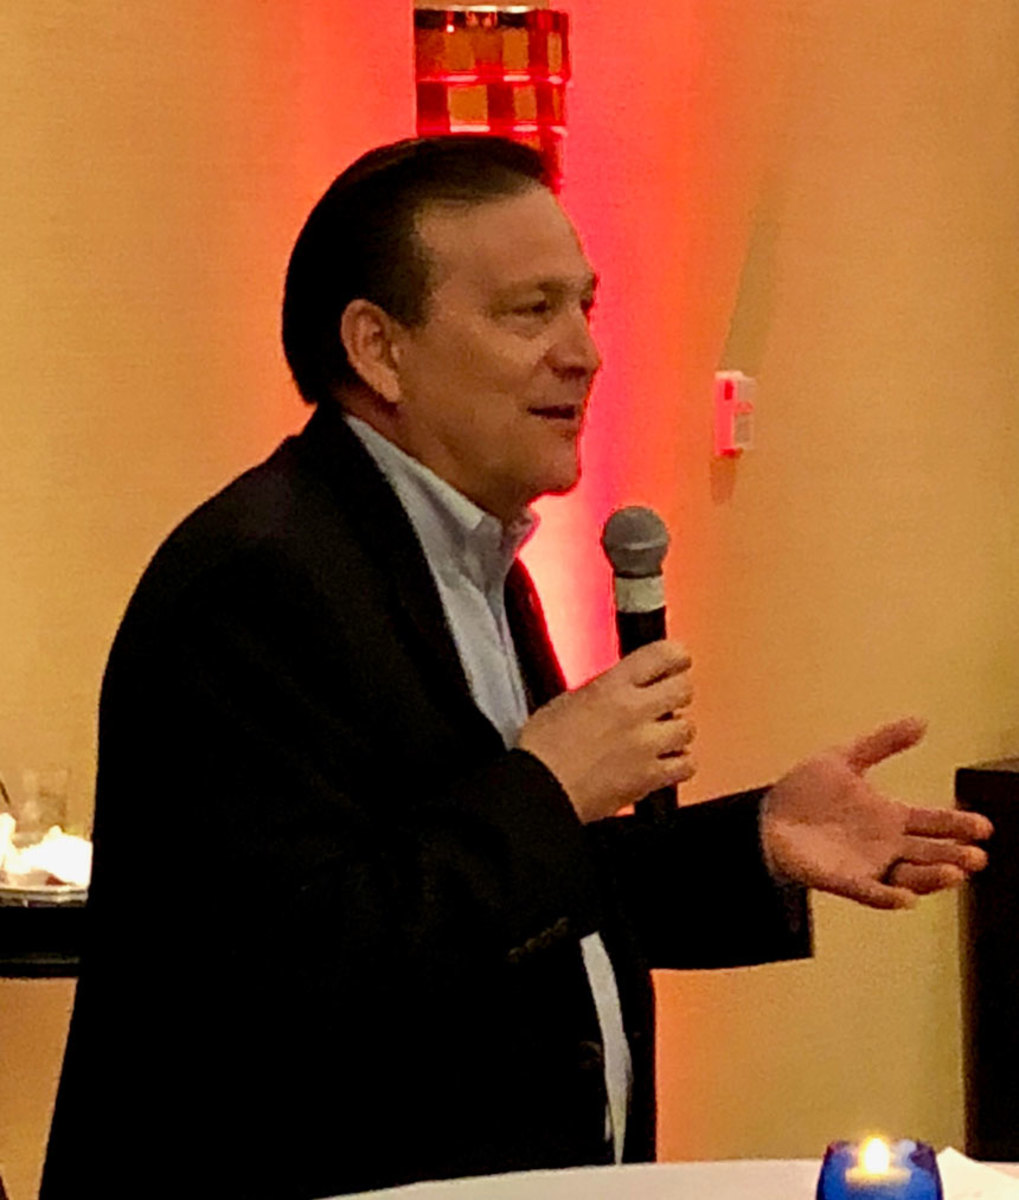 Yamaha Marine president Ben Speciale addressed media at a dinner during the Miami International Boat Show Thursday night.